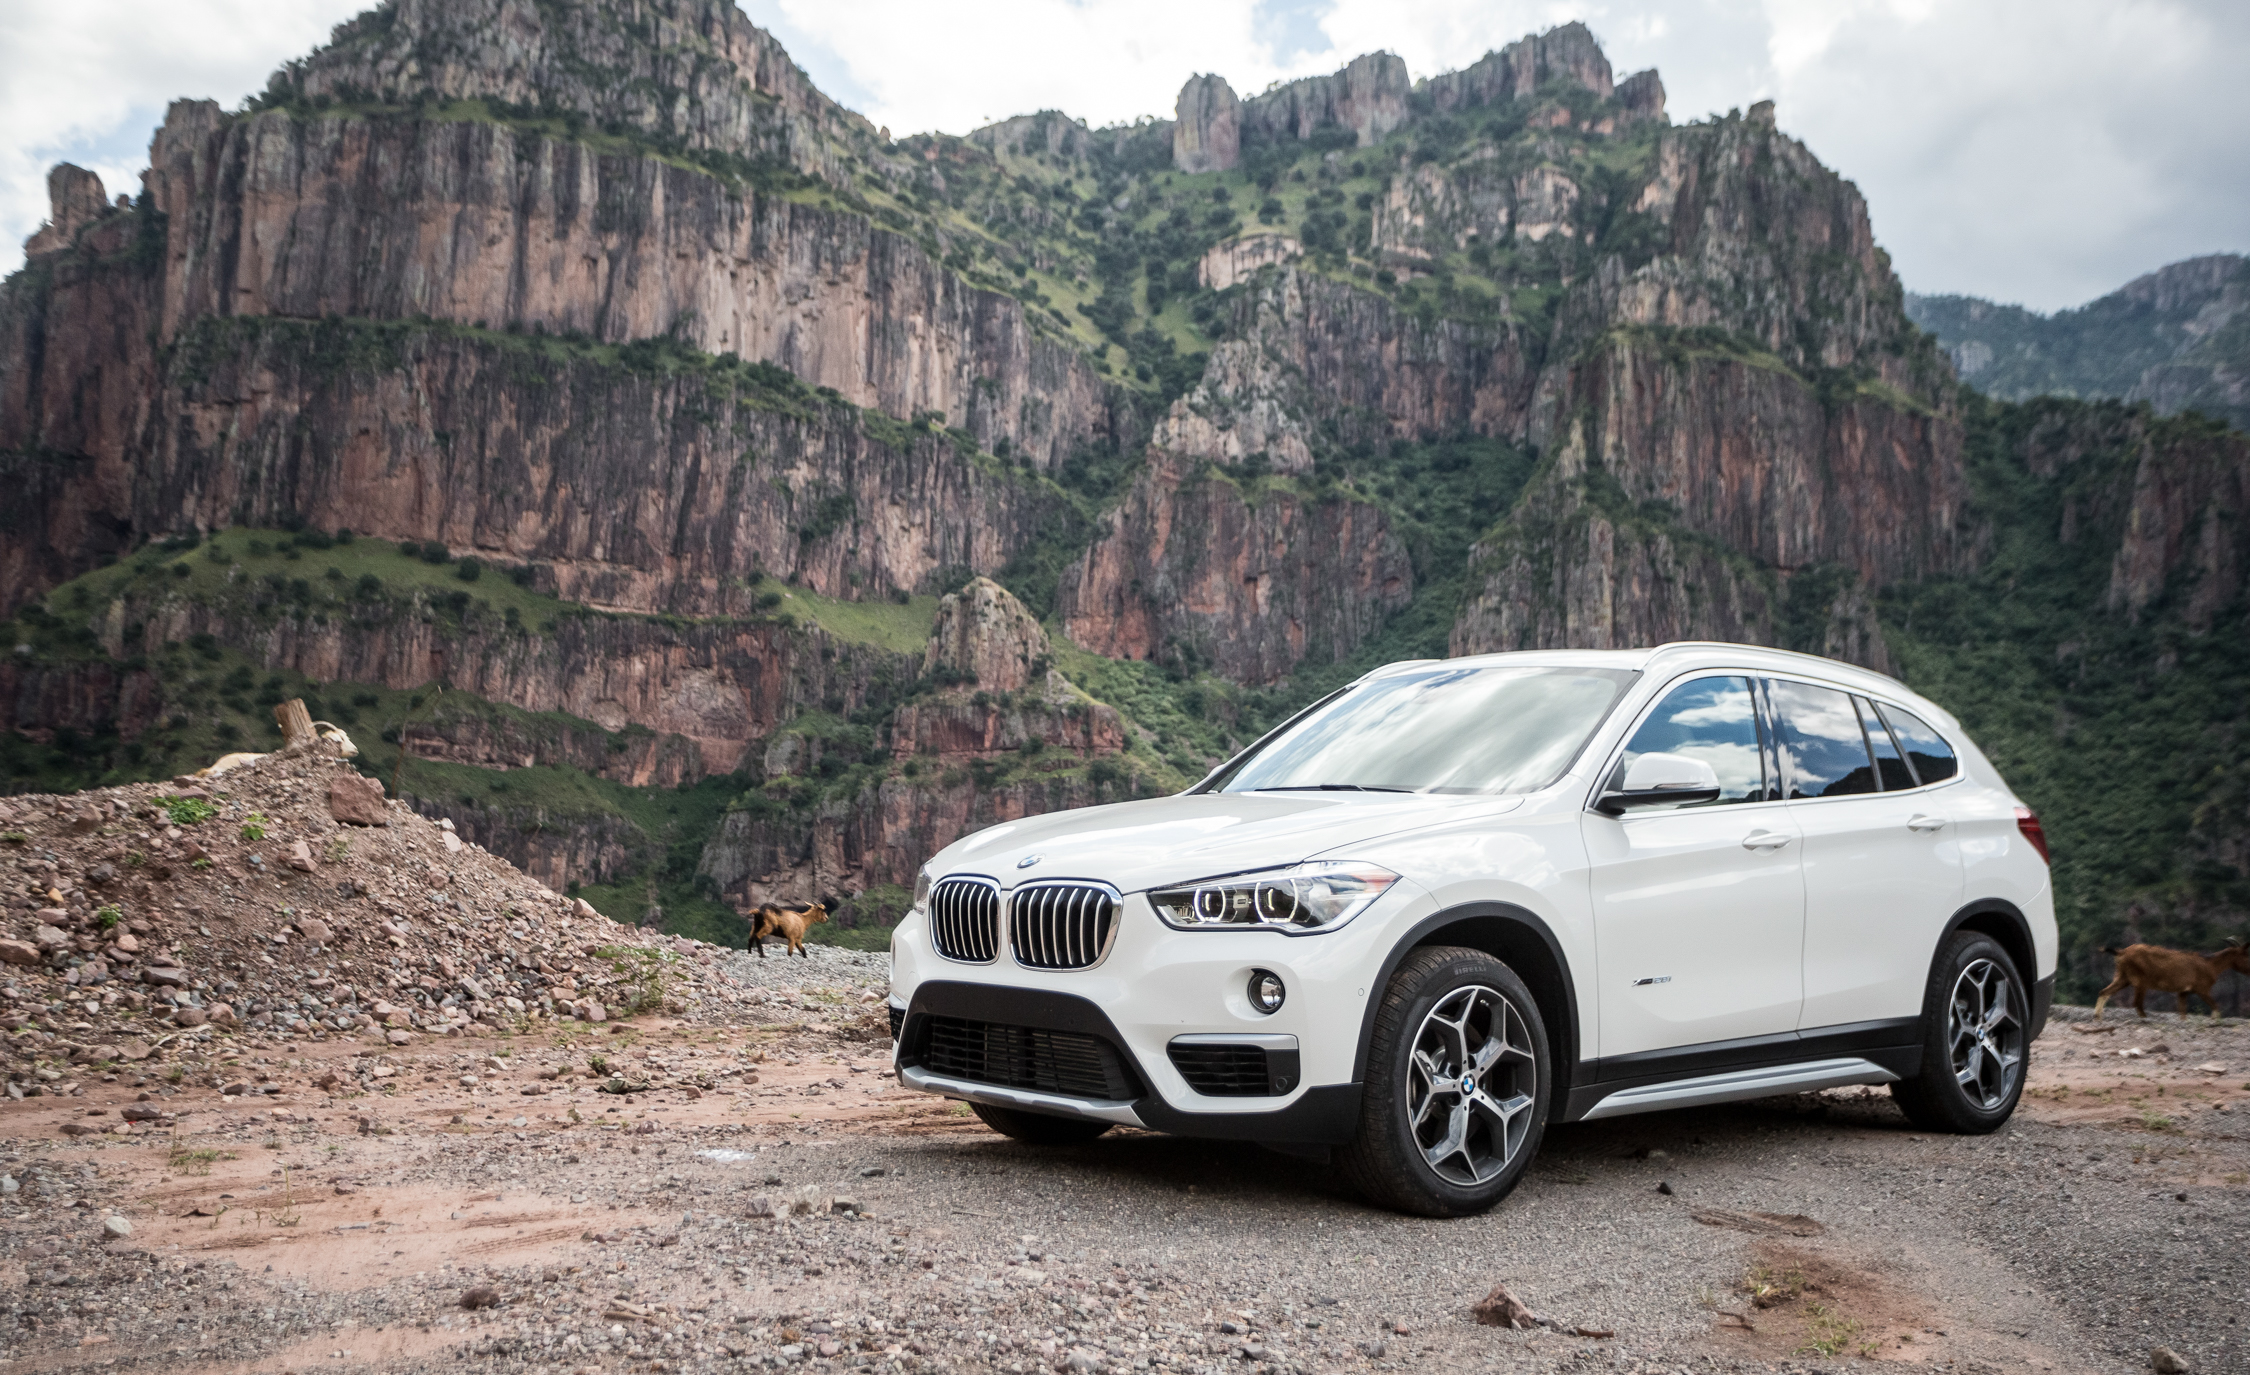 2016 BMW X1 Exterior White Metallic (Photo 1 of 36)